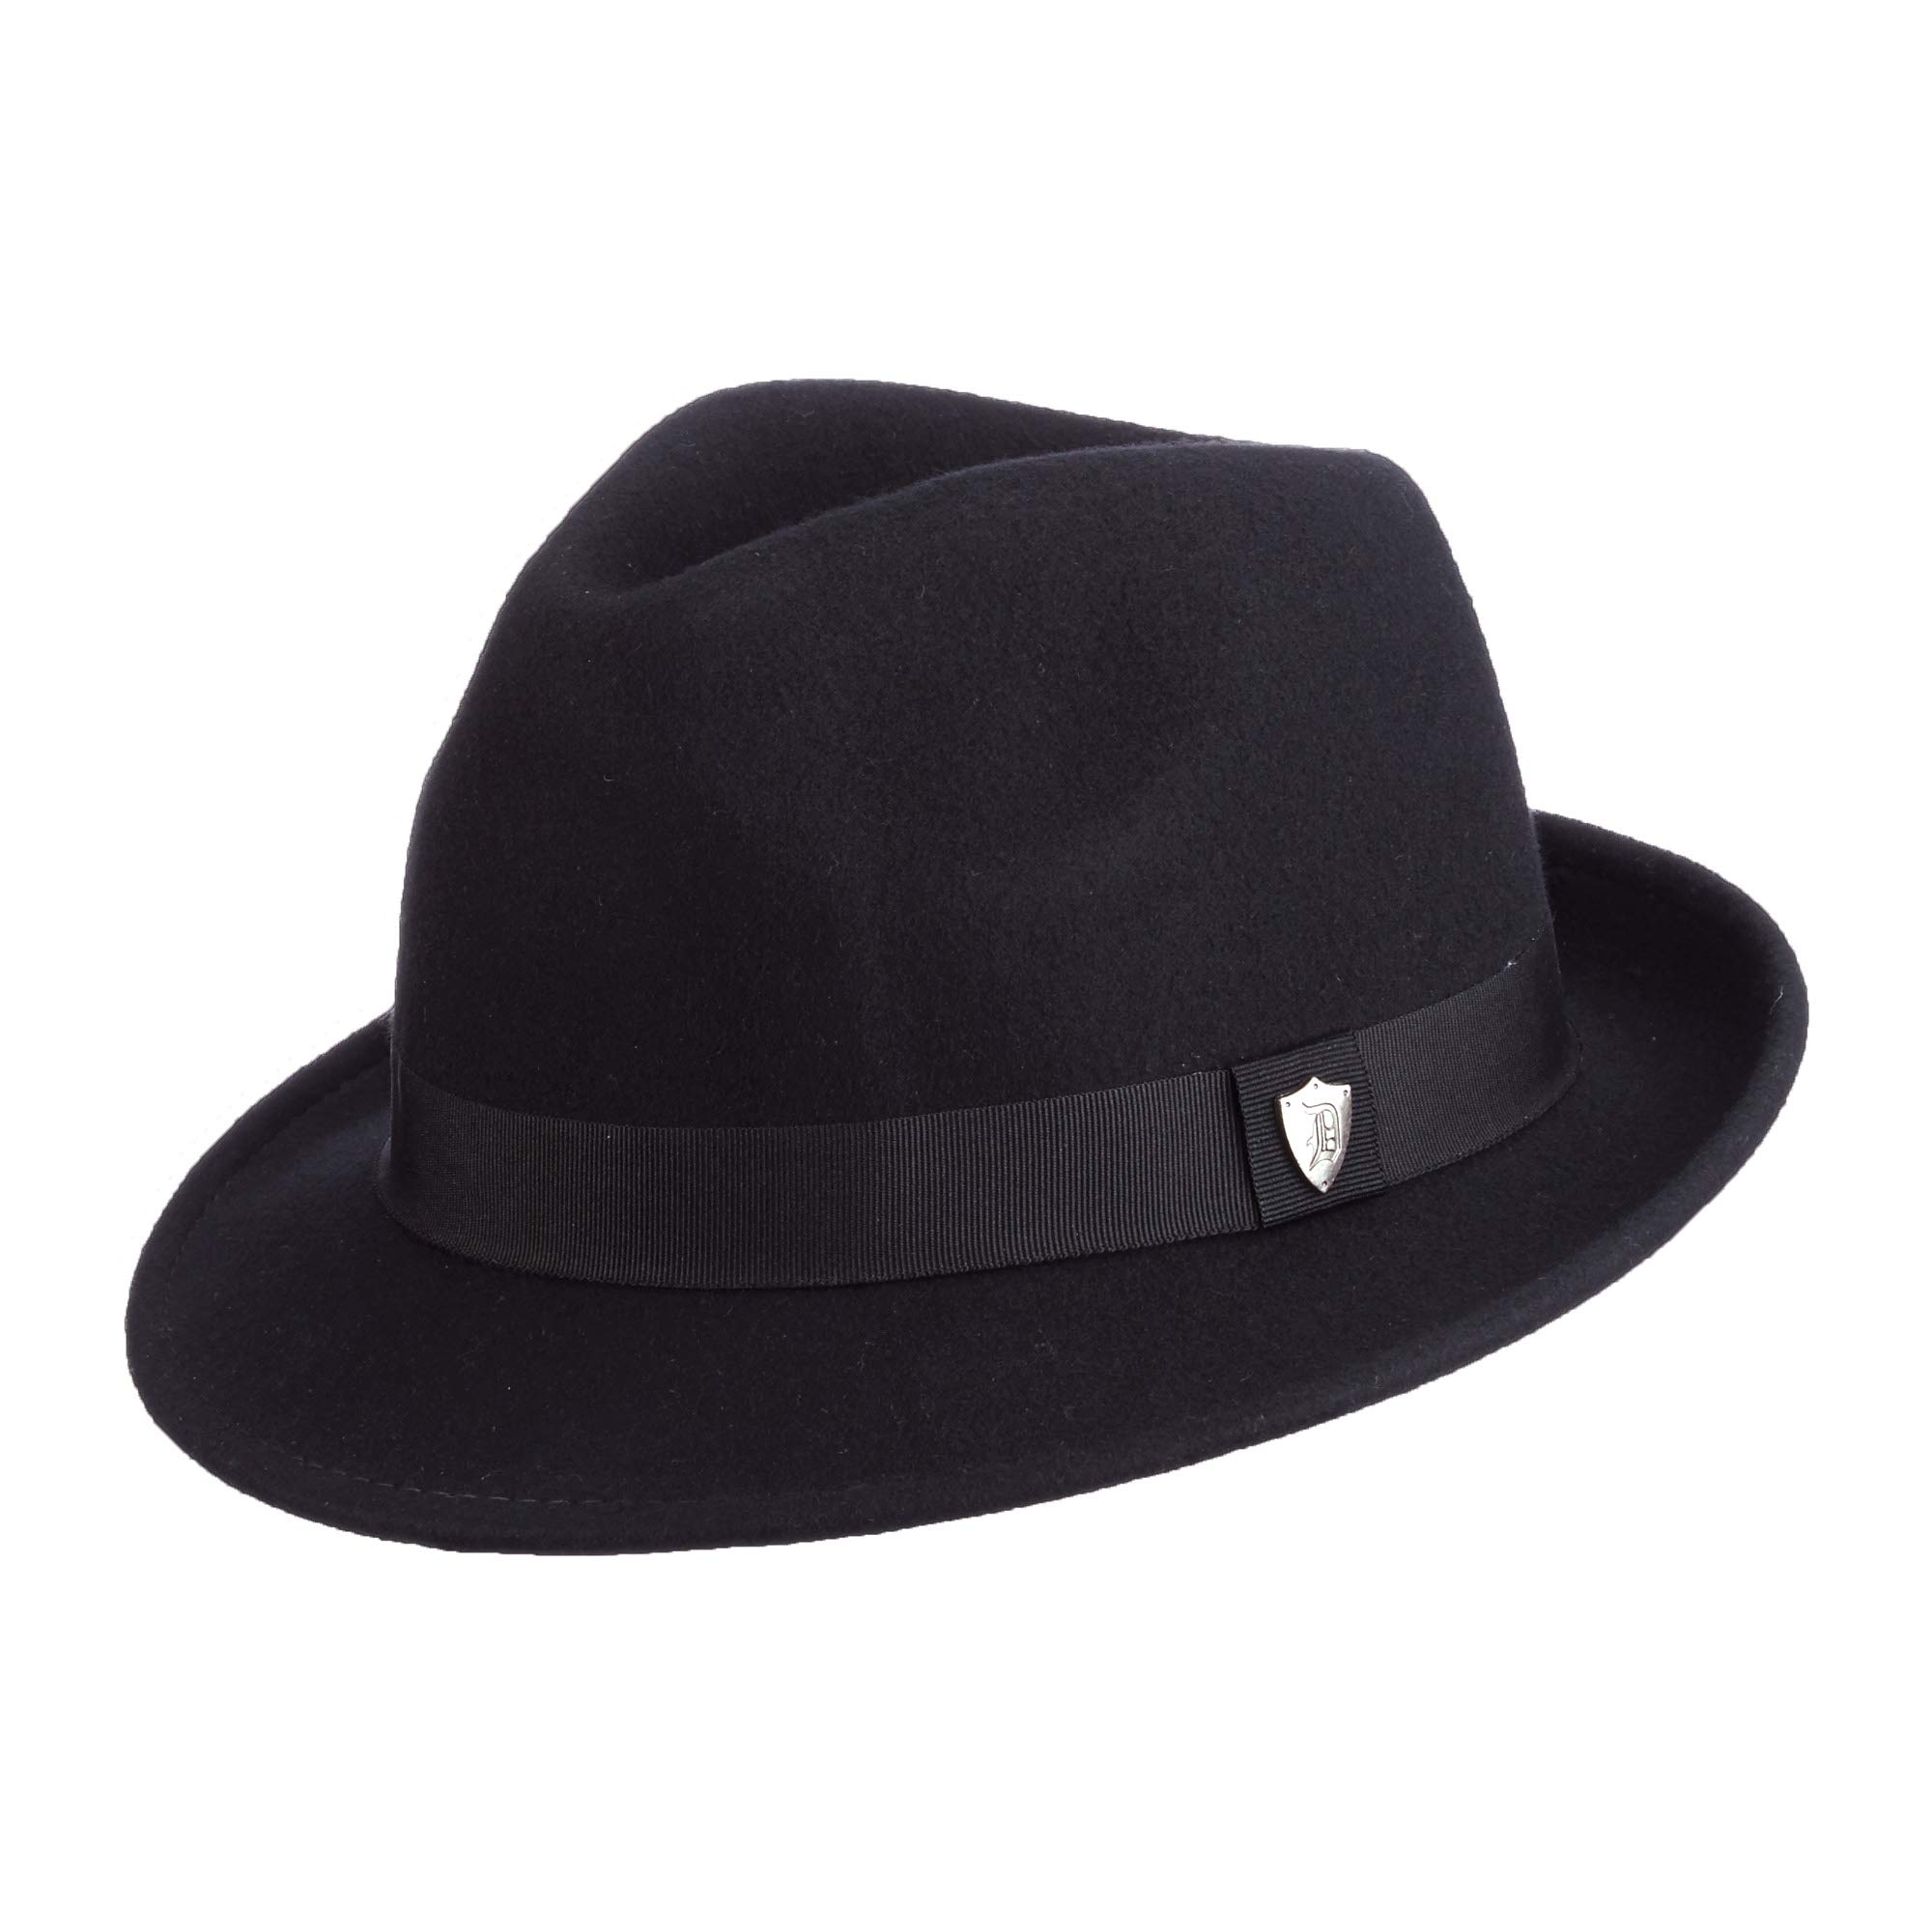 43b926ae01bacd Best Rated in Men's Fedoras & Helpful Customer Reviews - Amazon.com